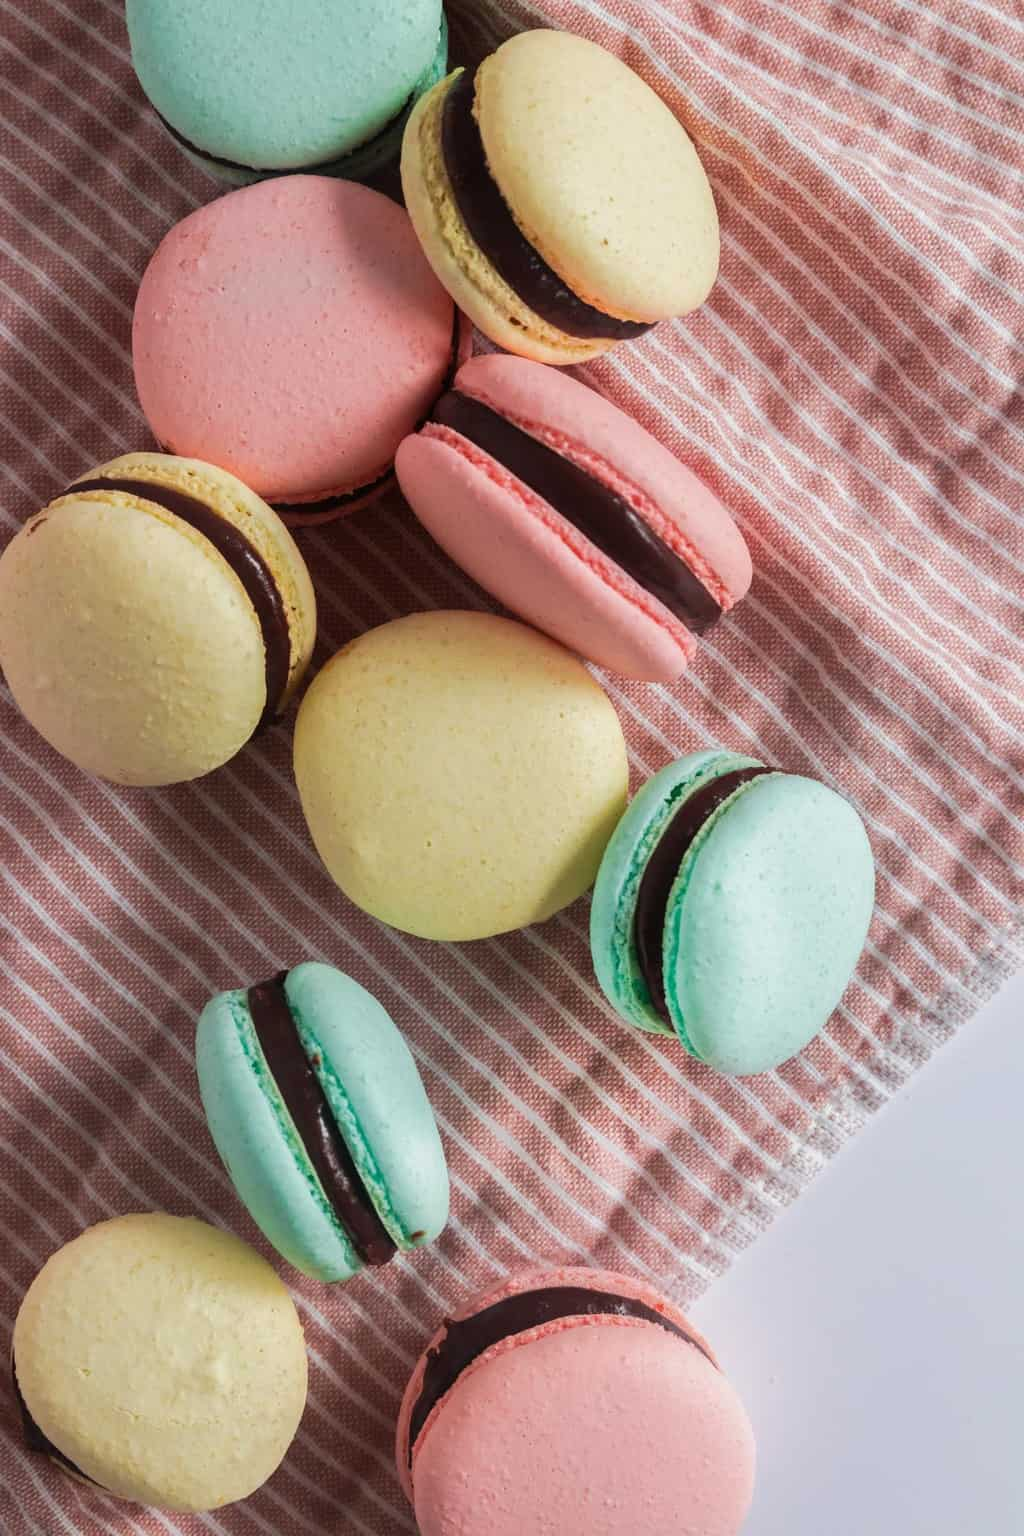 A close up photo of Italian Macarons made by Sugar and Cloth